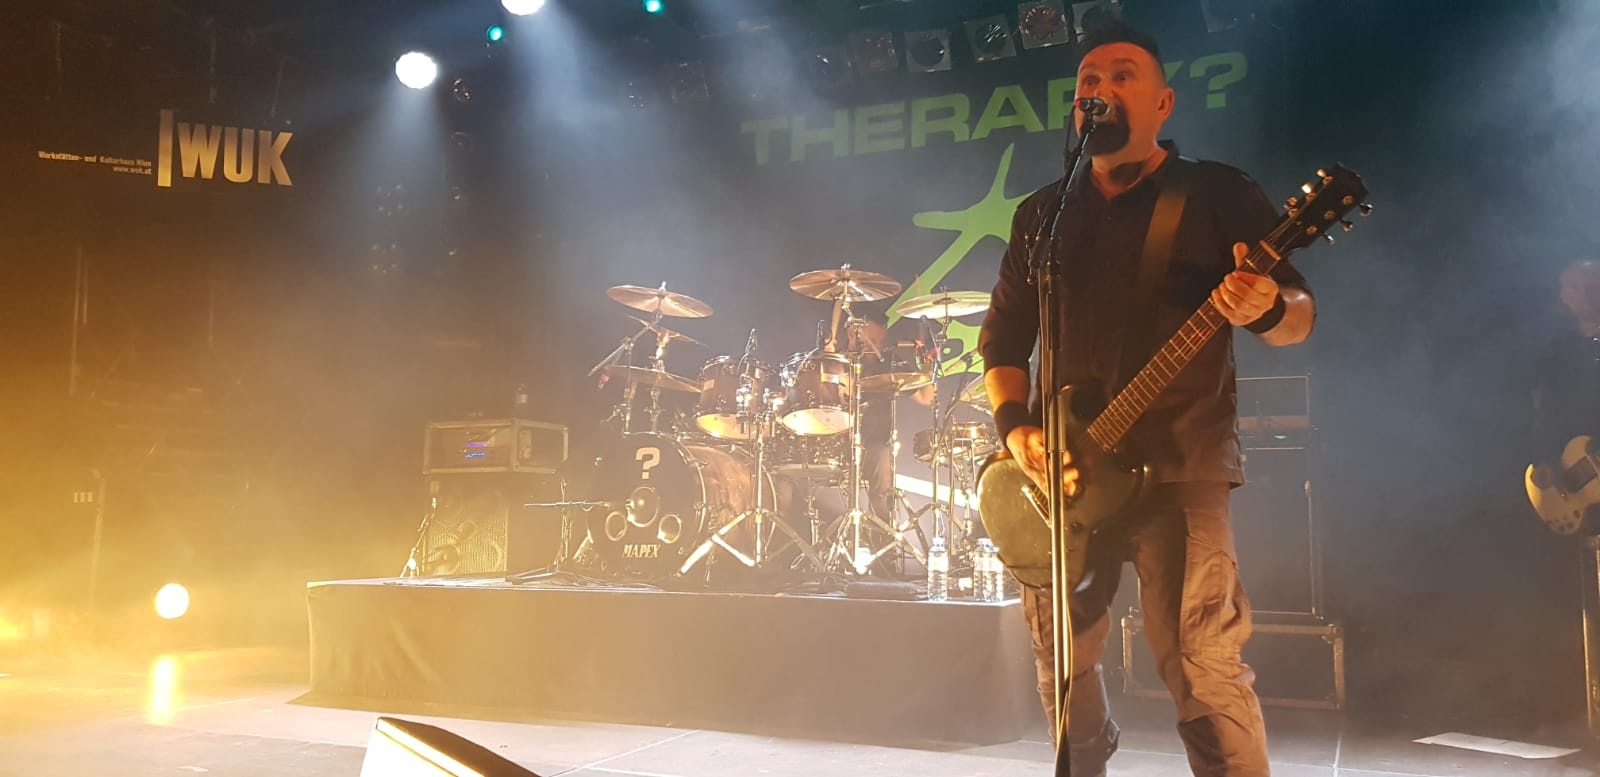 live-review-therapy-wulkatal-trio-31-01-2019-wuk-wien